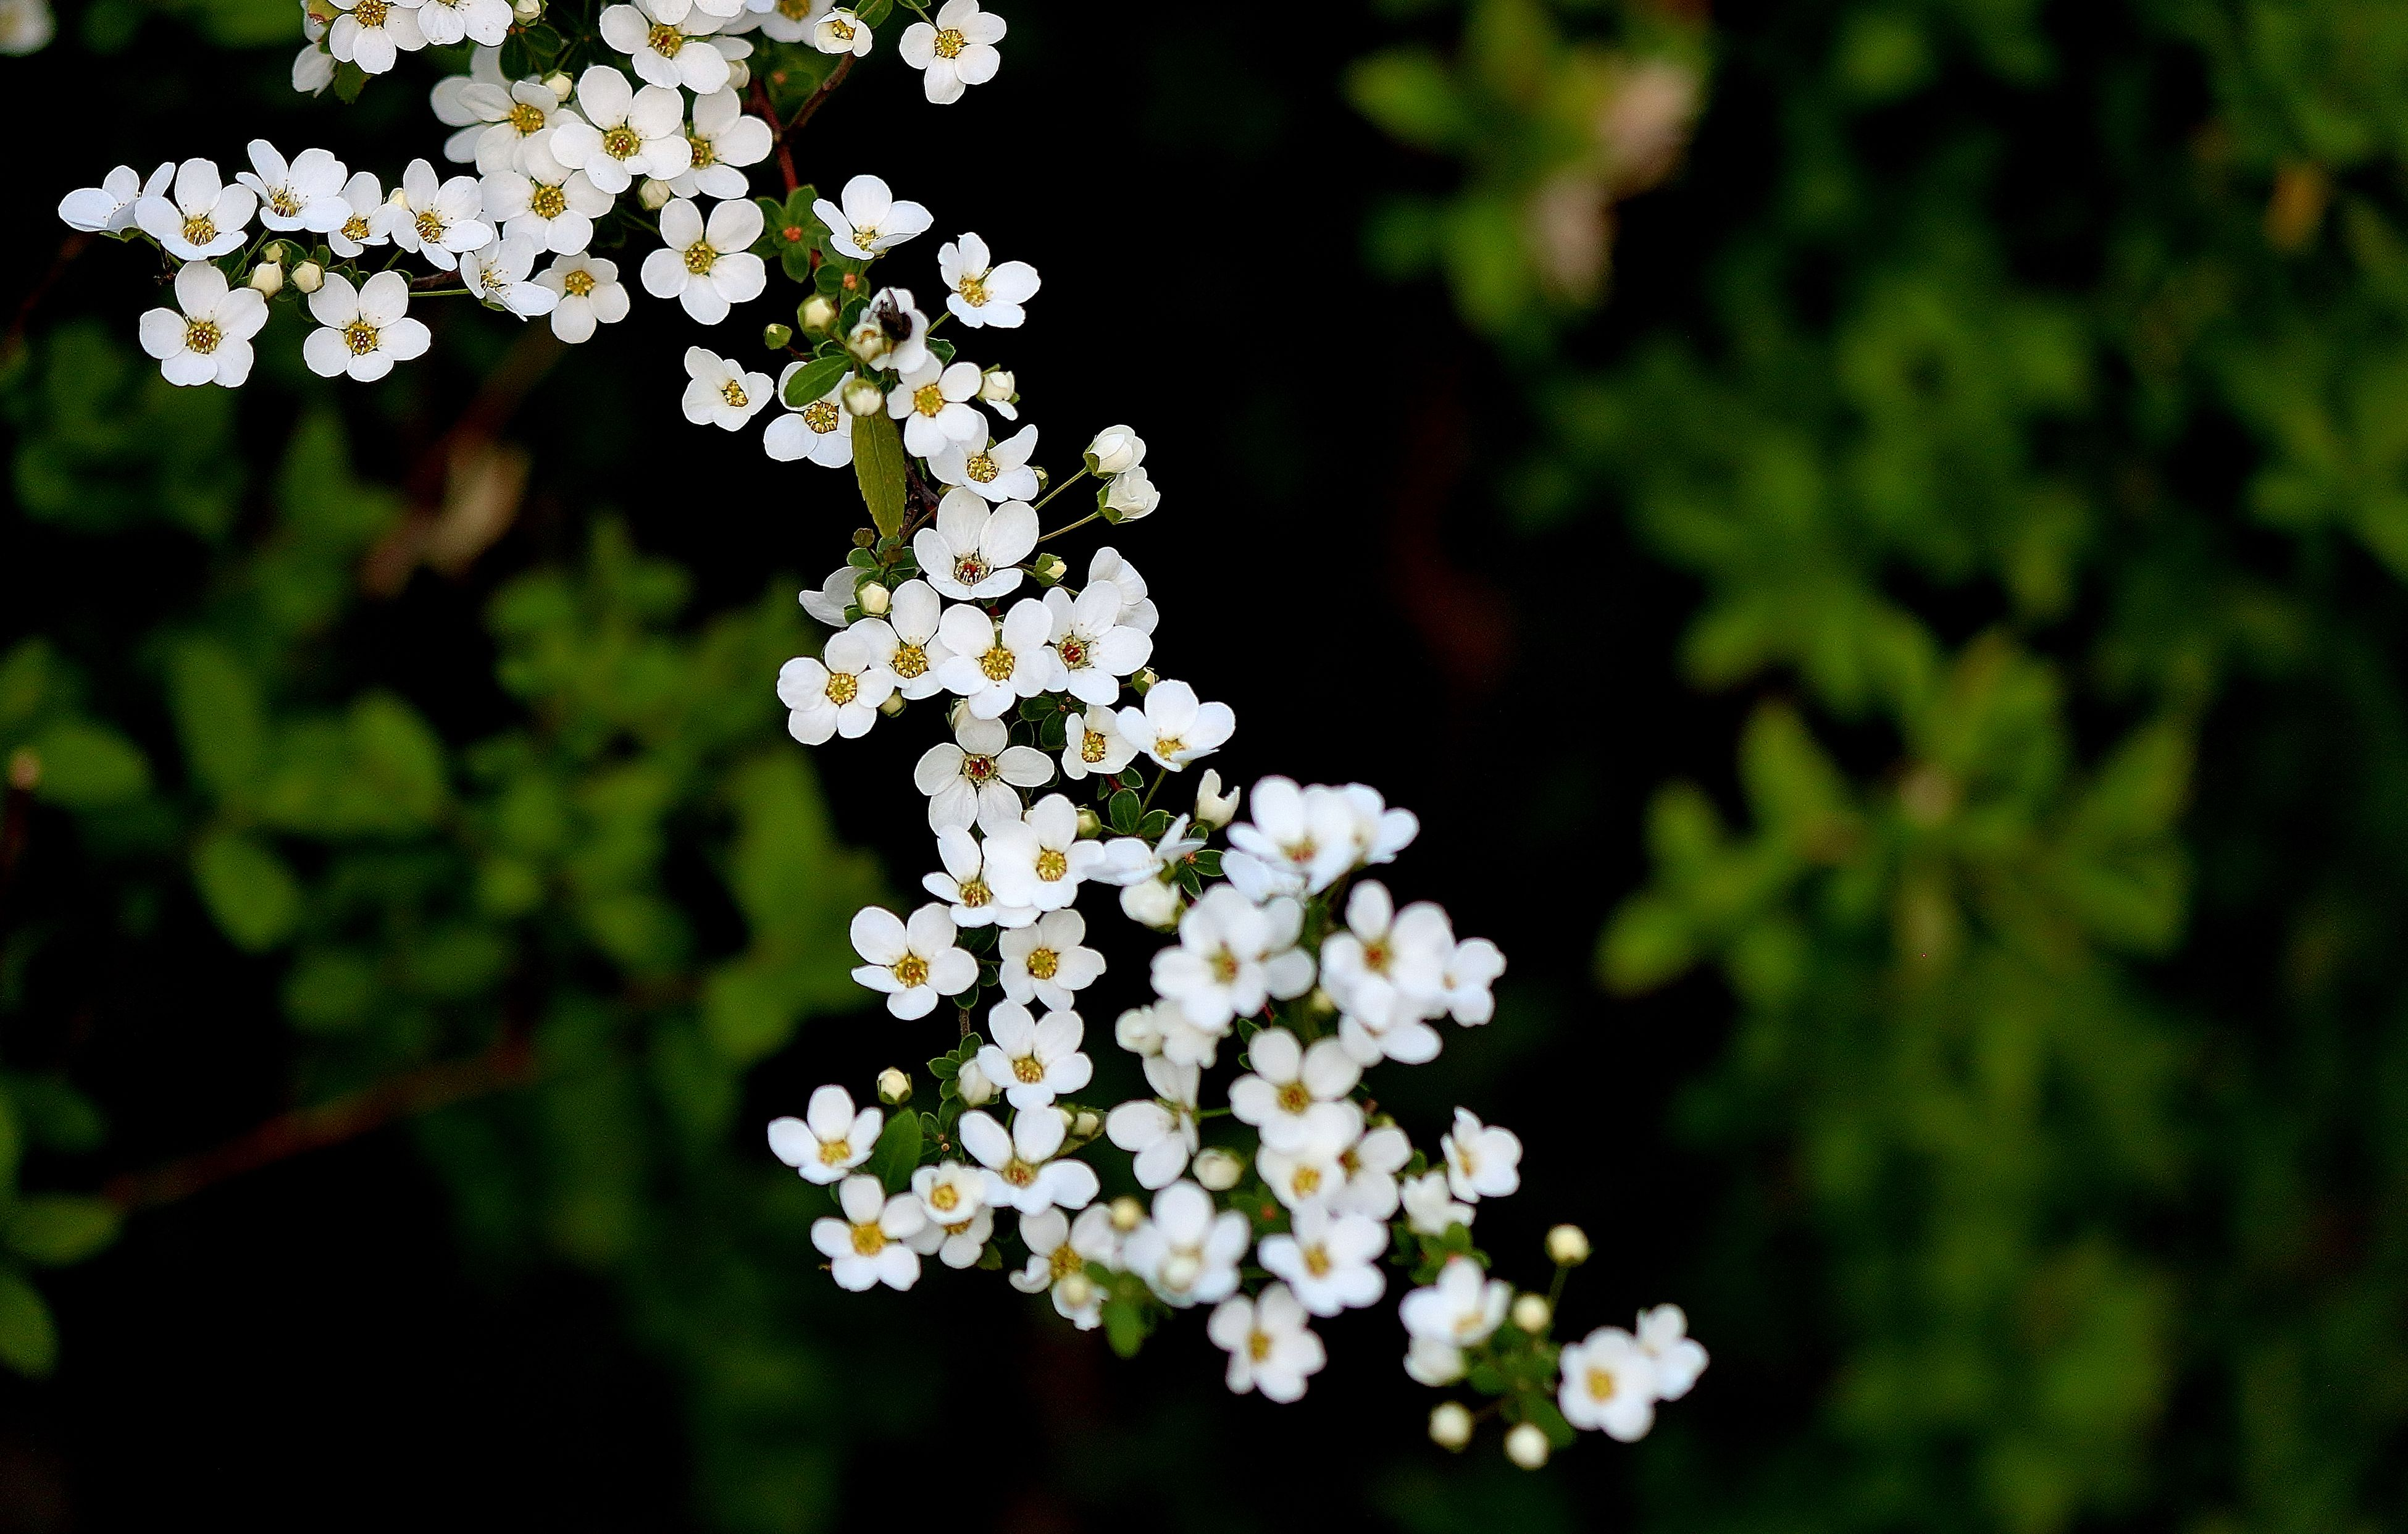 flower, growth, freshness, white color, fragility, focus on foreground, petal, beauty in nature, close-up, nature, blooming, flower head, plant, selective focus, blossom, outdoors, in bloom, park - man made space, day, white